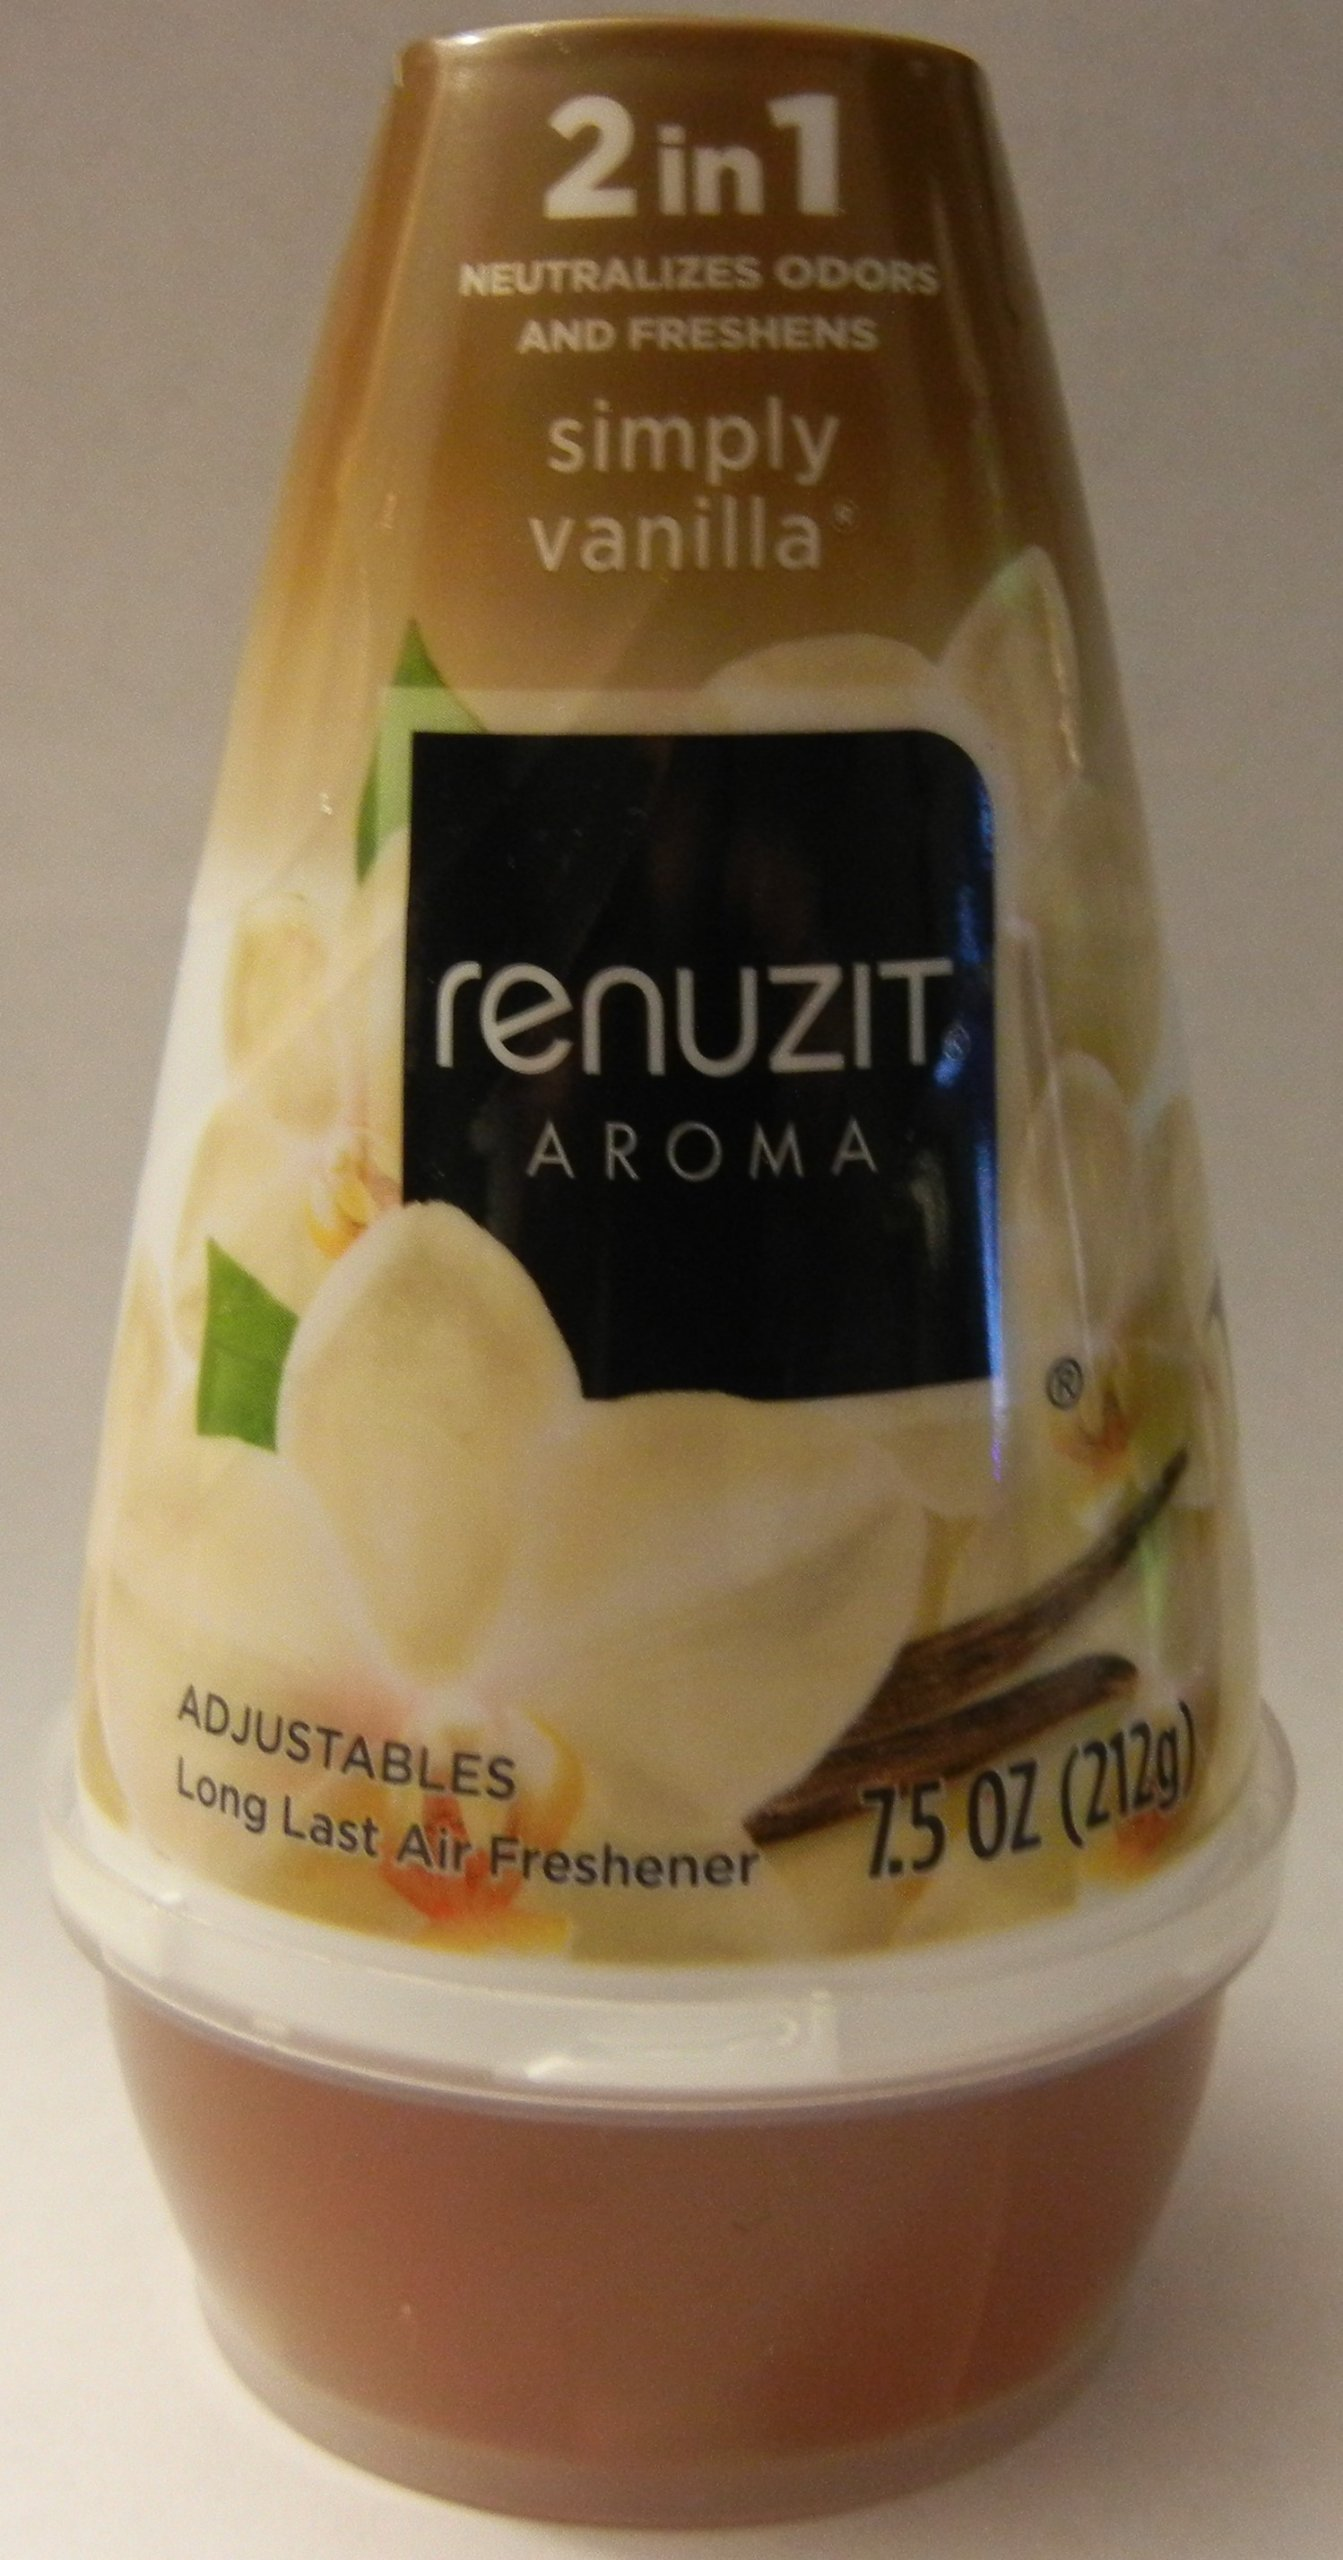 Renuzit Aroma Simply Vanilla 2 in 1 Neutralizes Odors and Freshens 7.5oz Adjustable